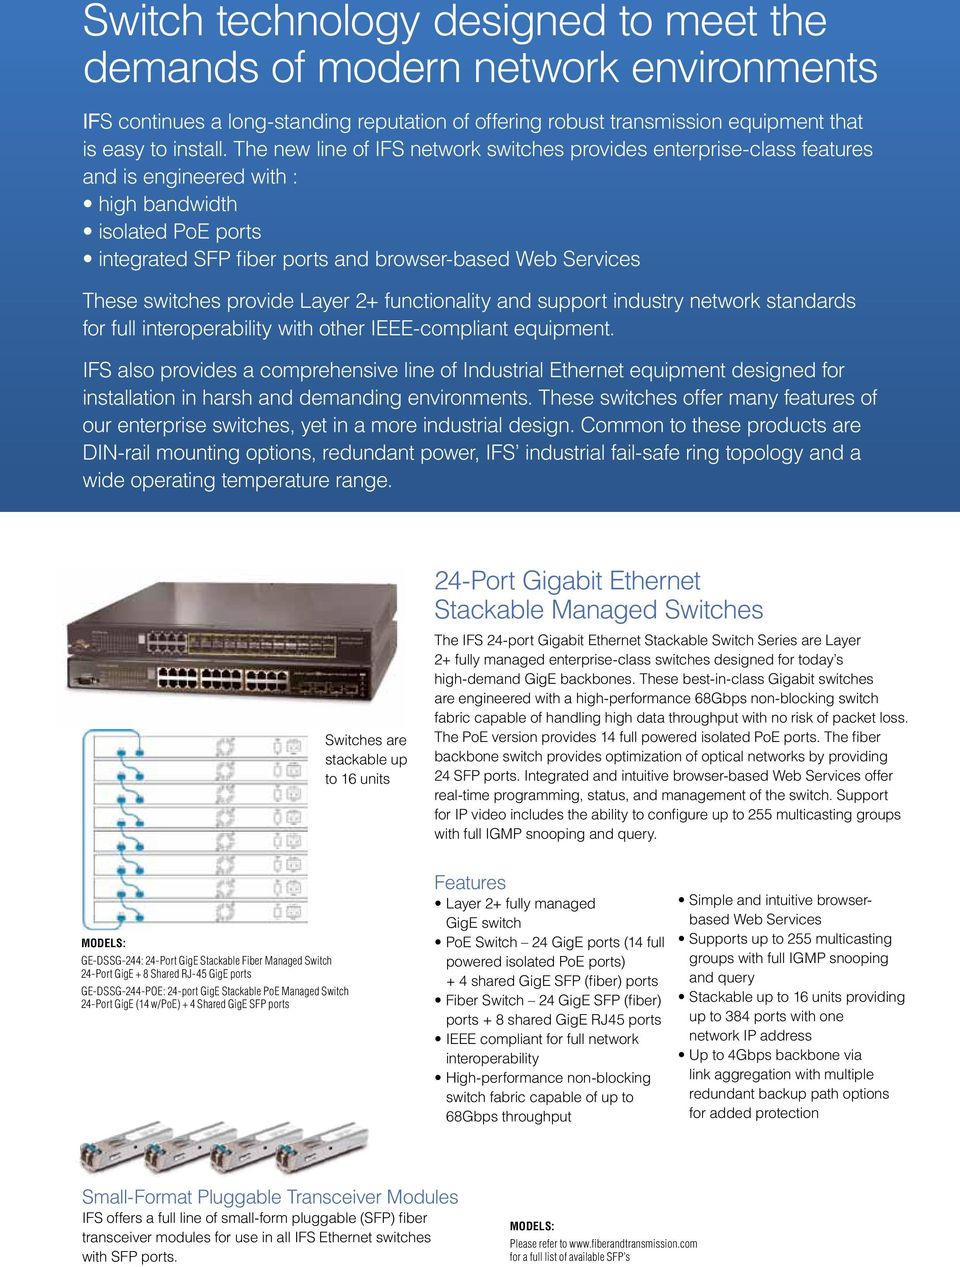 Your Single Source For Network Transmission Solutions Pdf Poweroverethernet Poe On Industrialbased Networking Fig 2 Switches Provide Layer Functionality And Support Industry Standards Full Interoperability With Other